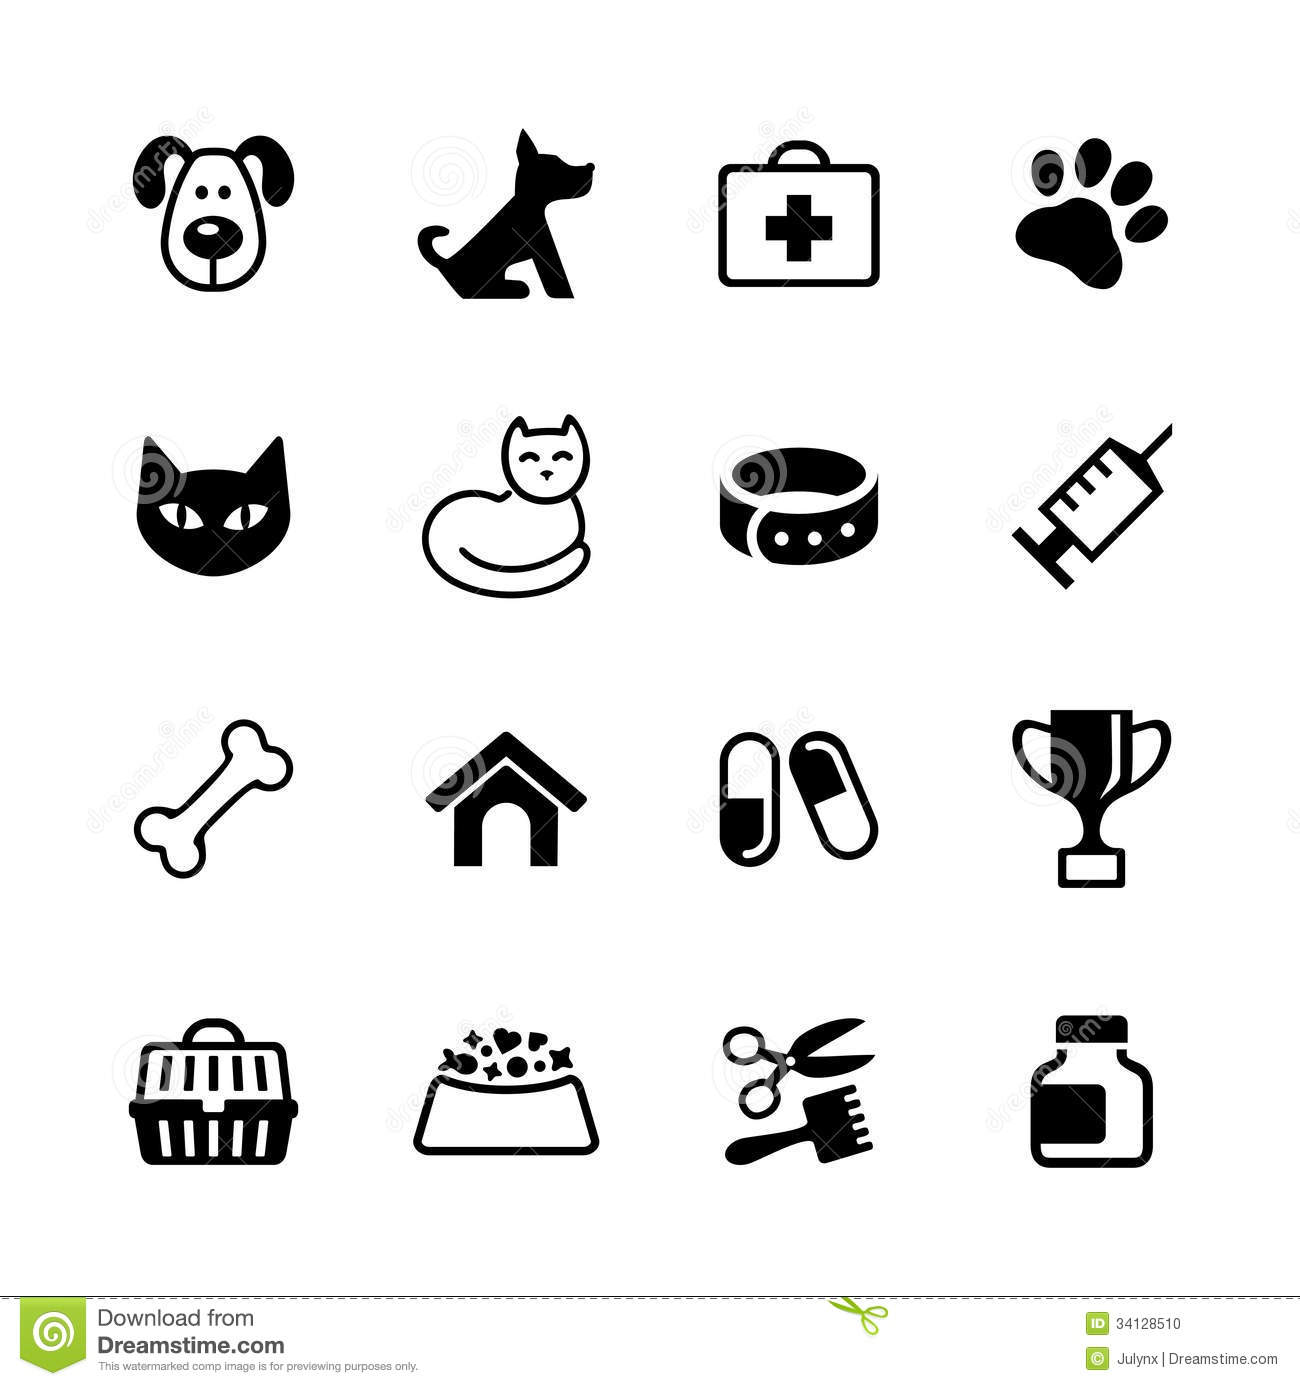 Foto De Stock Ajuste  C3 ADcones Animais De Estima C3 A7 C3 A3o Cl C3 ADnica Do Veterin C3 A1rio Medicina Veterin C3 A1ria Image34128510 additionally Details in addition Stock Photography Glass Bowl Raffle Drawing Vector Illustration Image1774132 as well Rubicon Global additionally Fun Math Activities For 1st Grade. on united tech